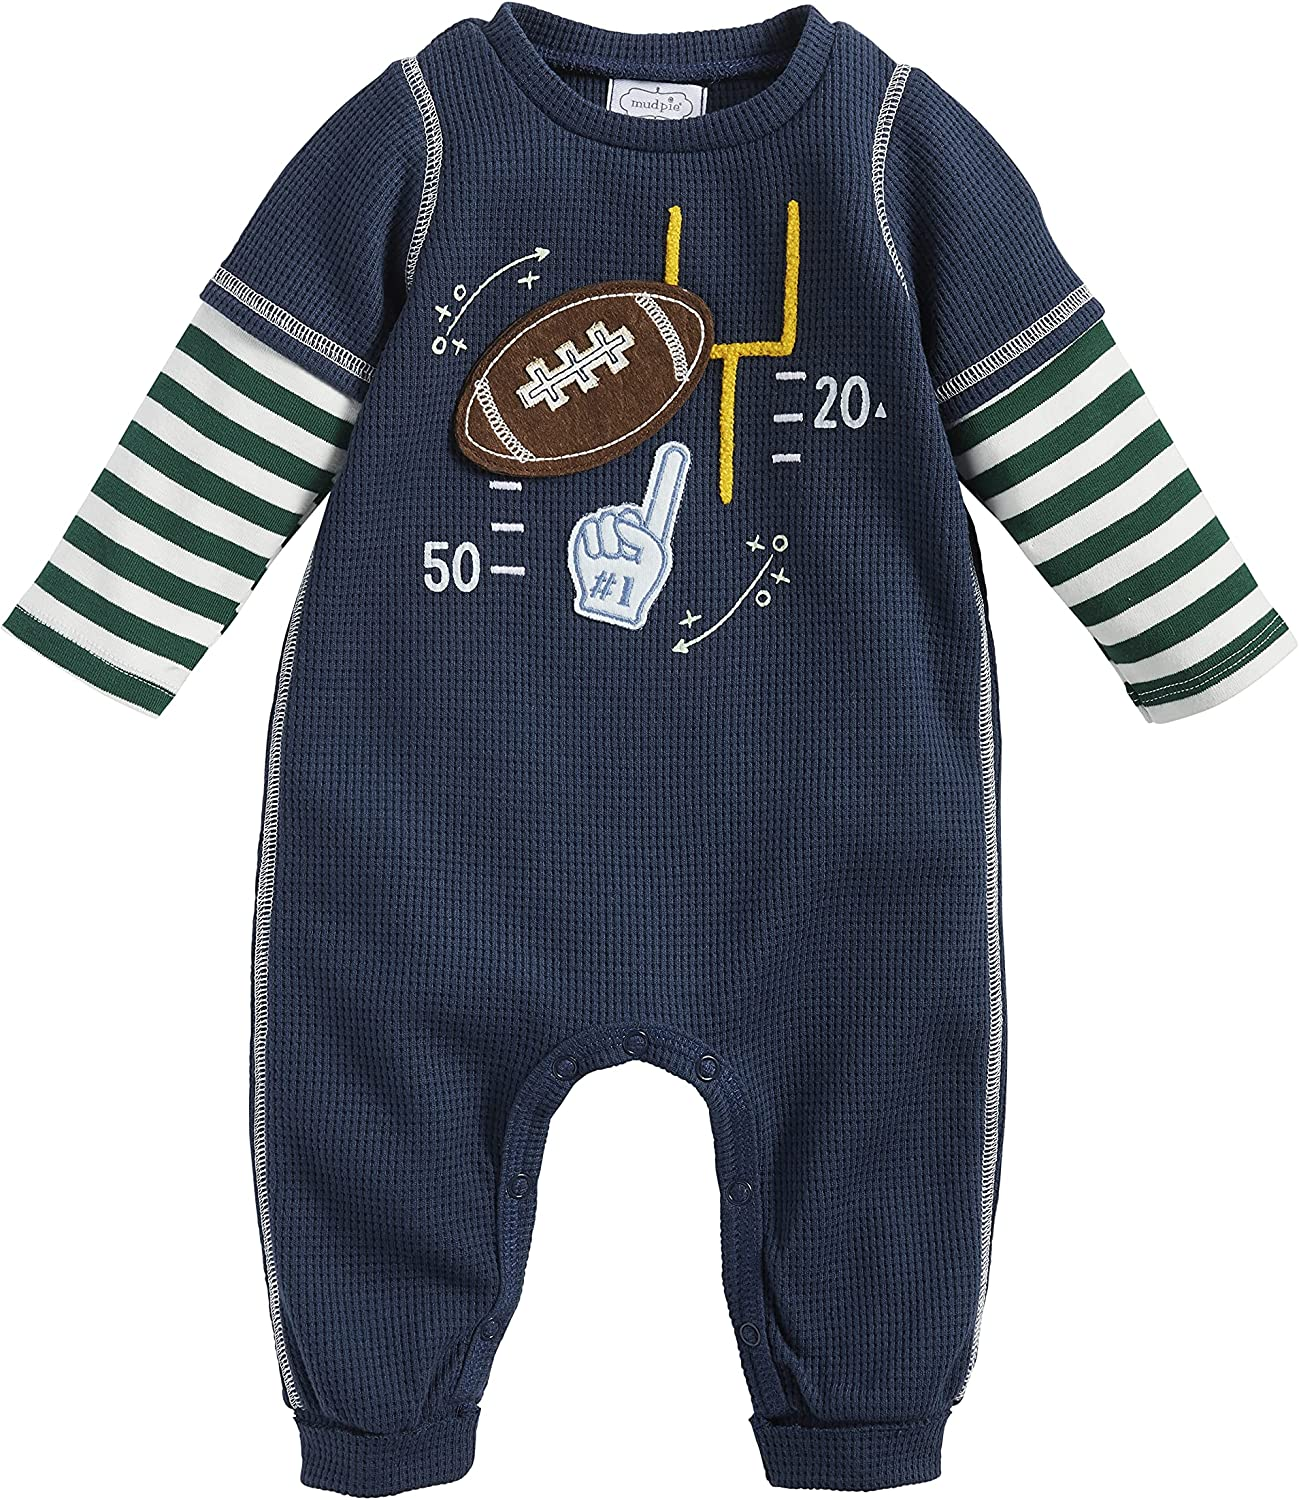 Mud Award Pie Baby Boys' Football Waffle Challenge the lowest price of Japan One Navy Blue Piece Outfit